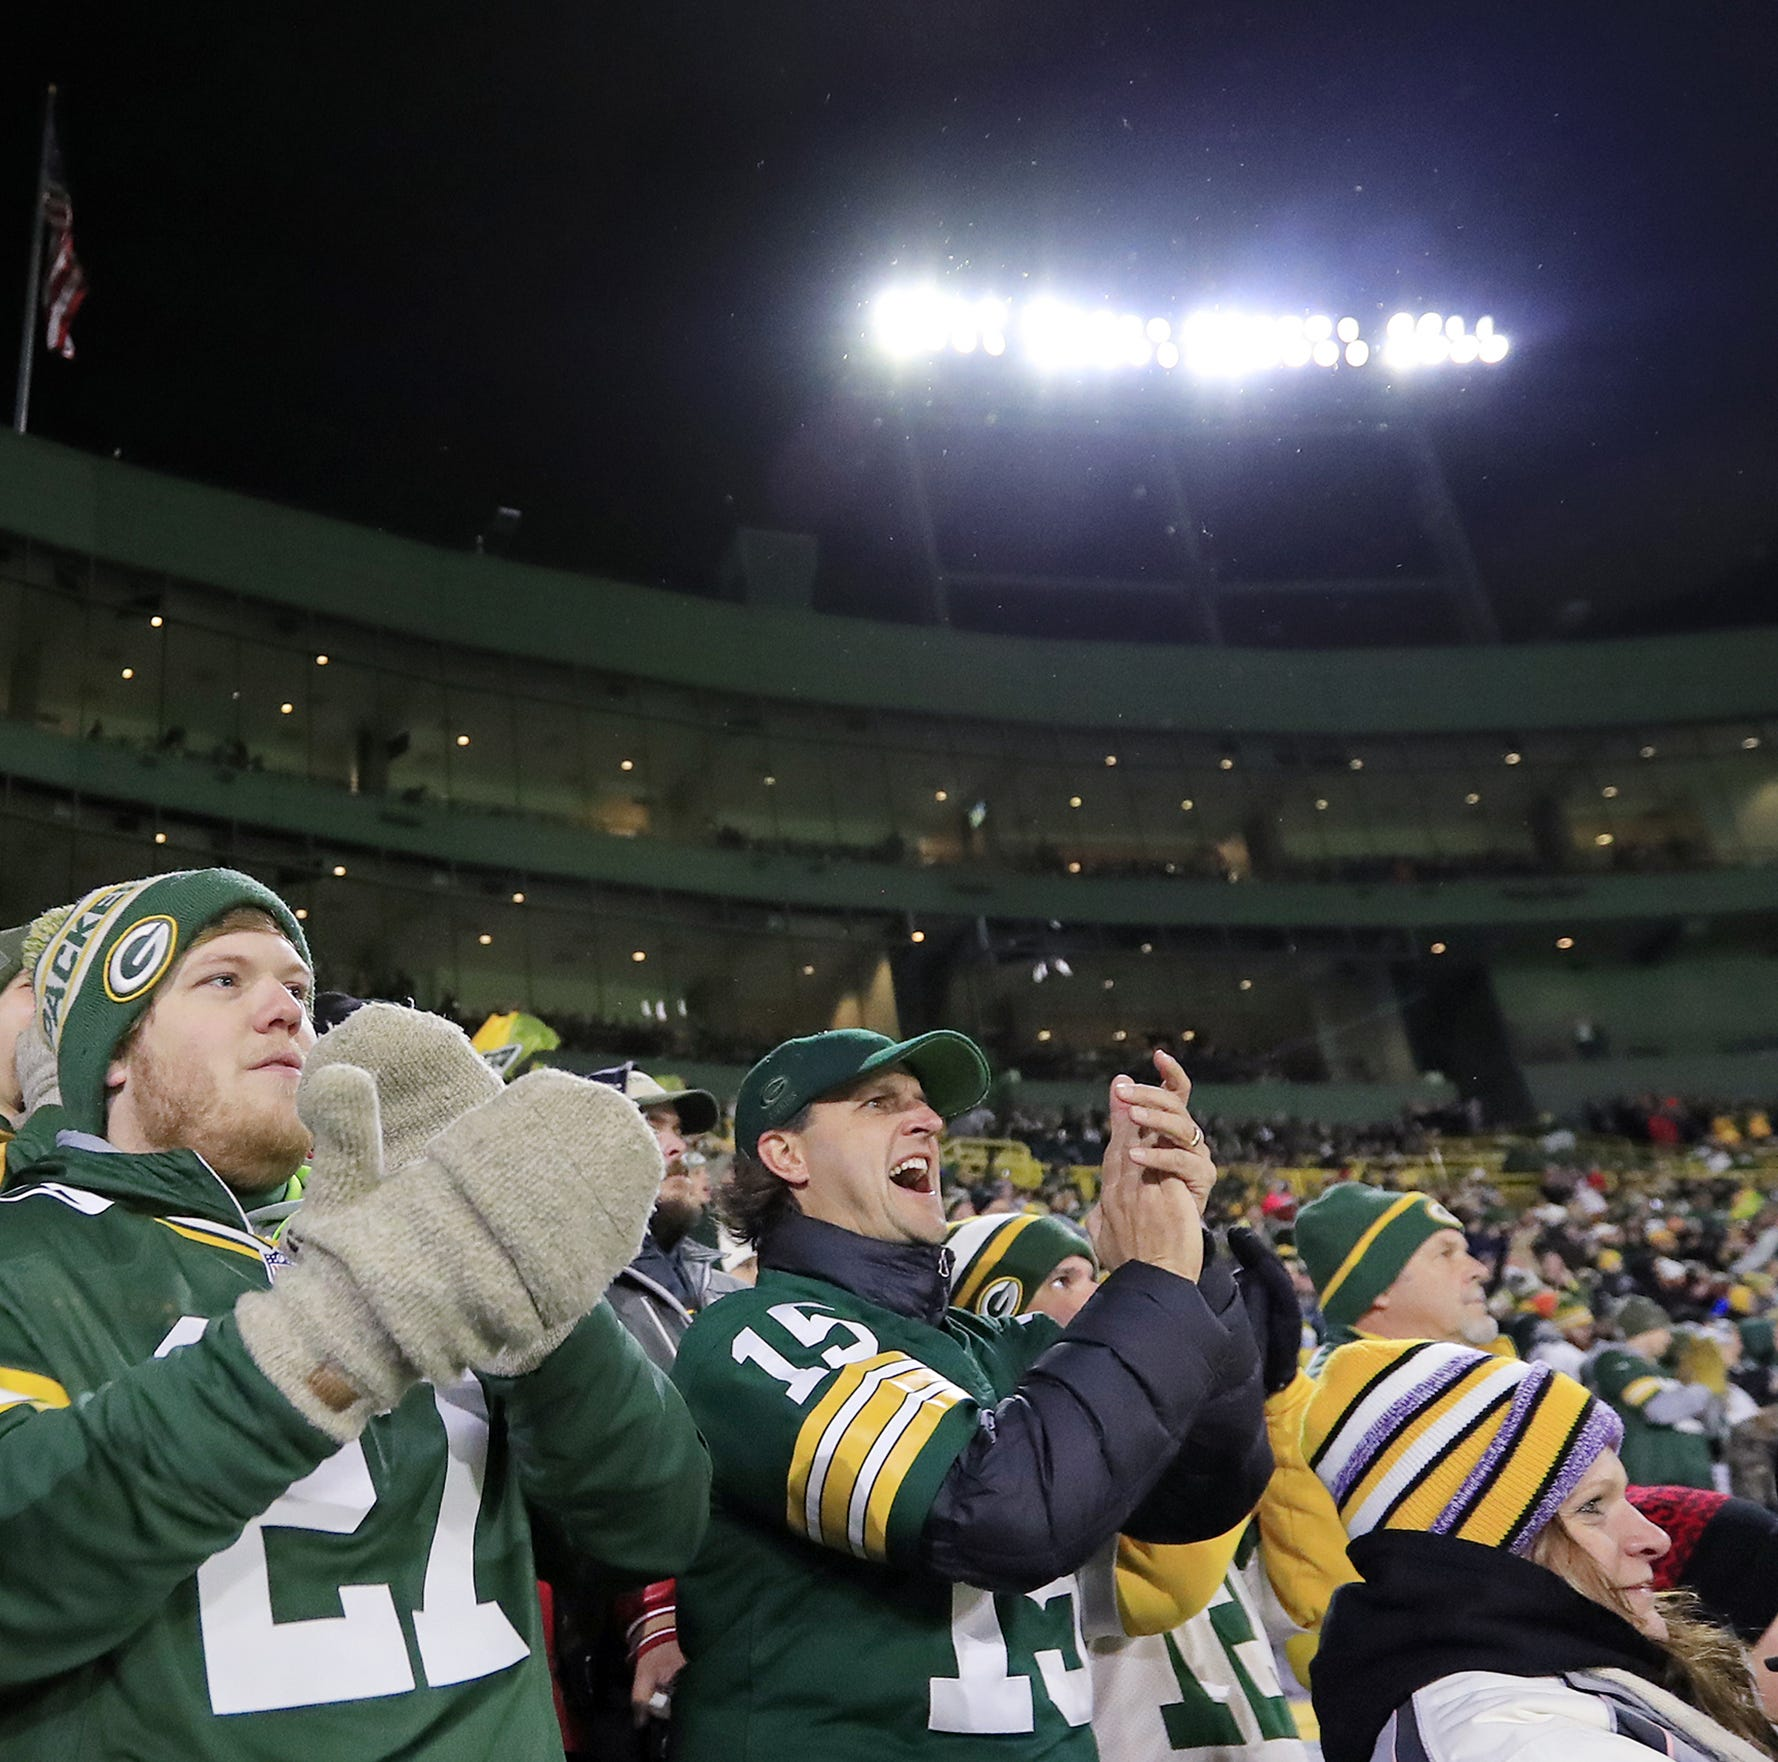 In Section 103, Green Bay Packers fans have their second family